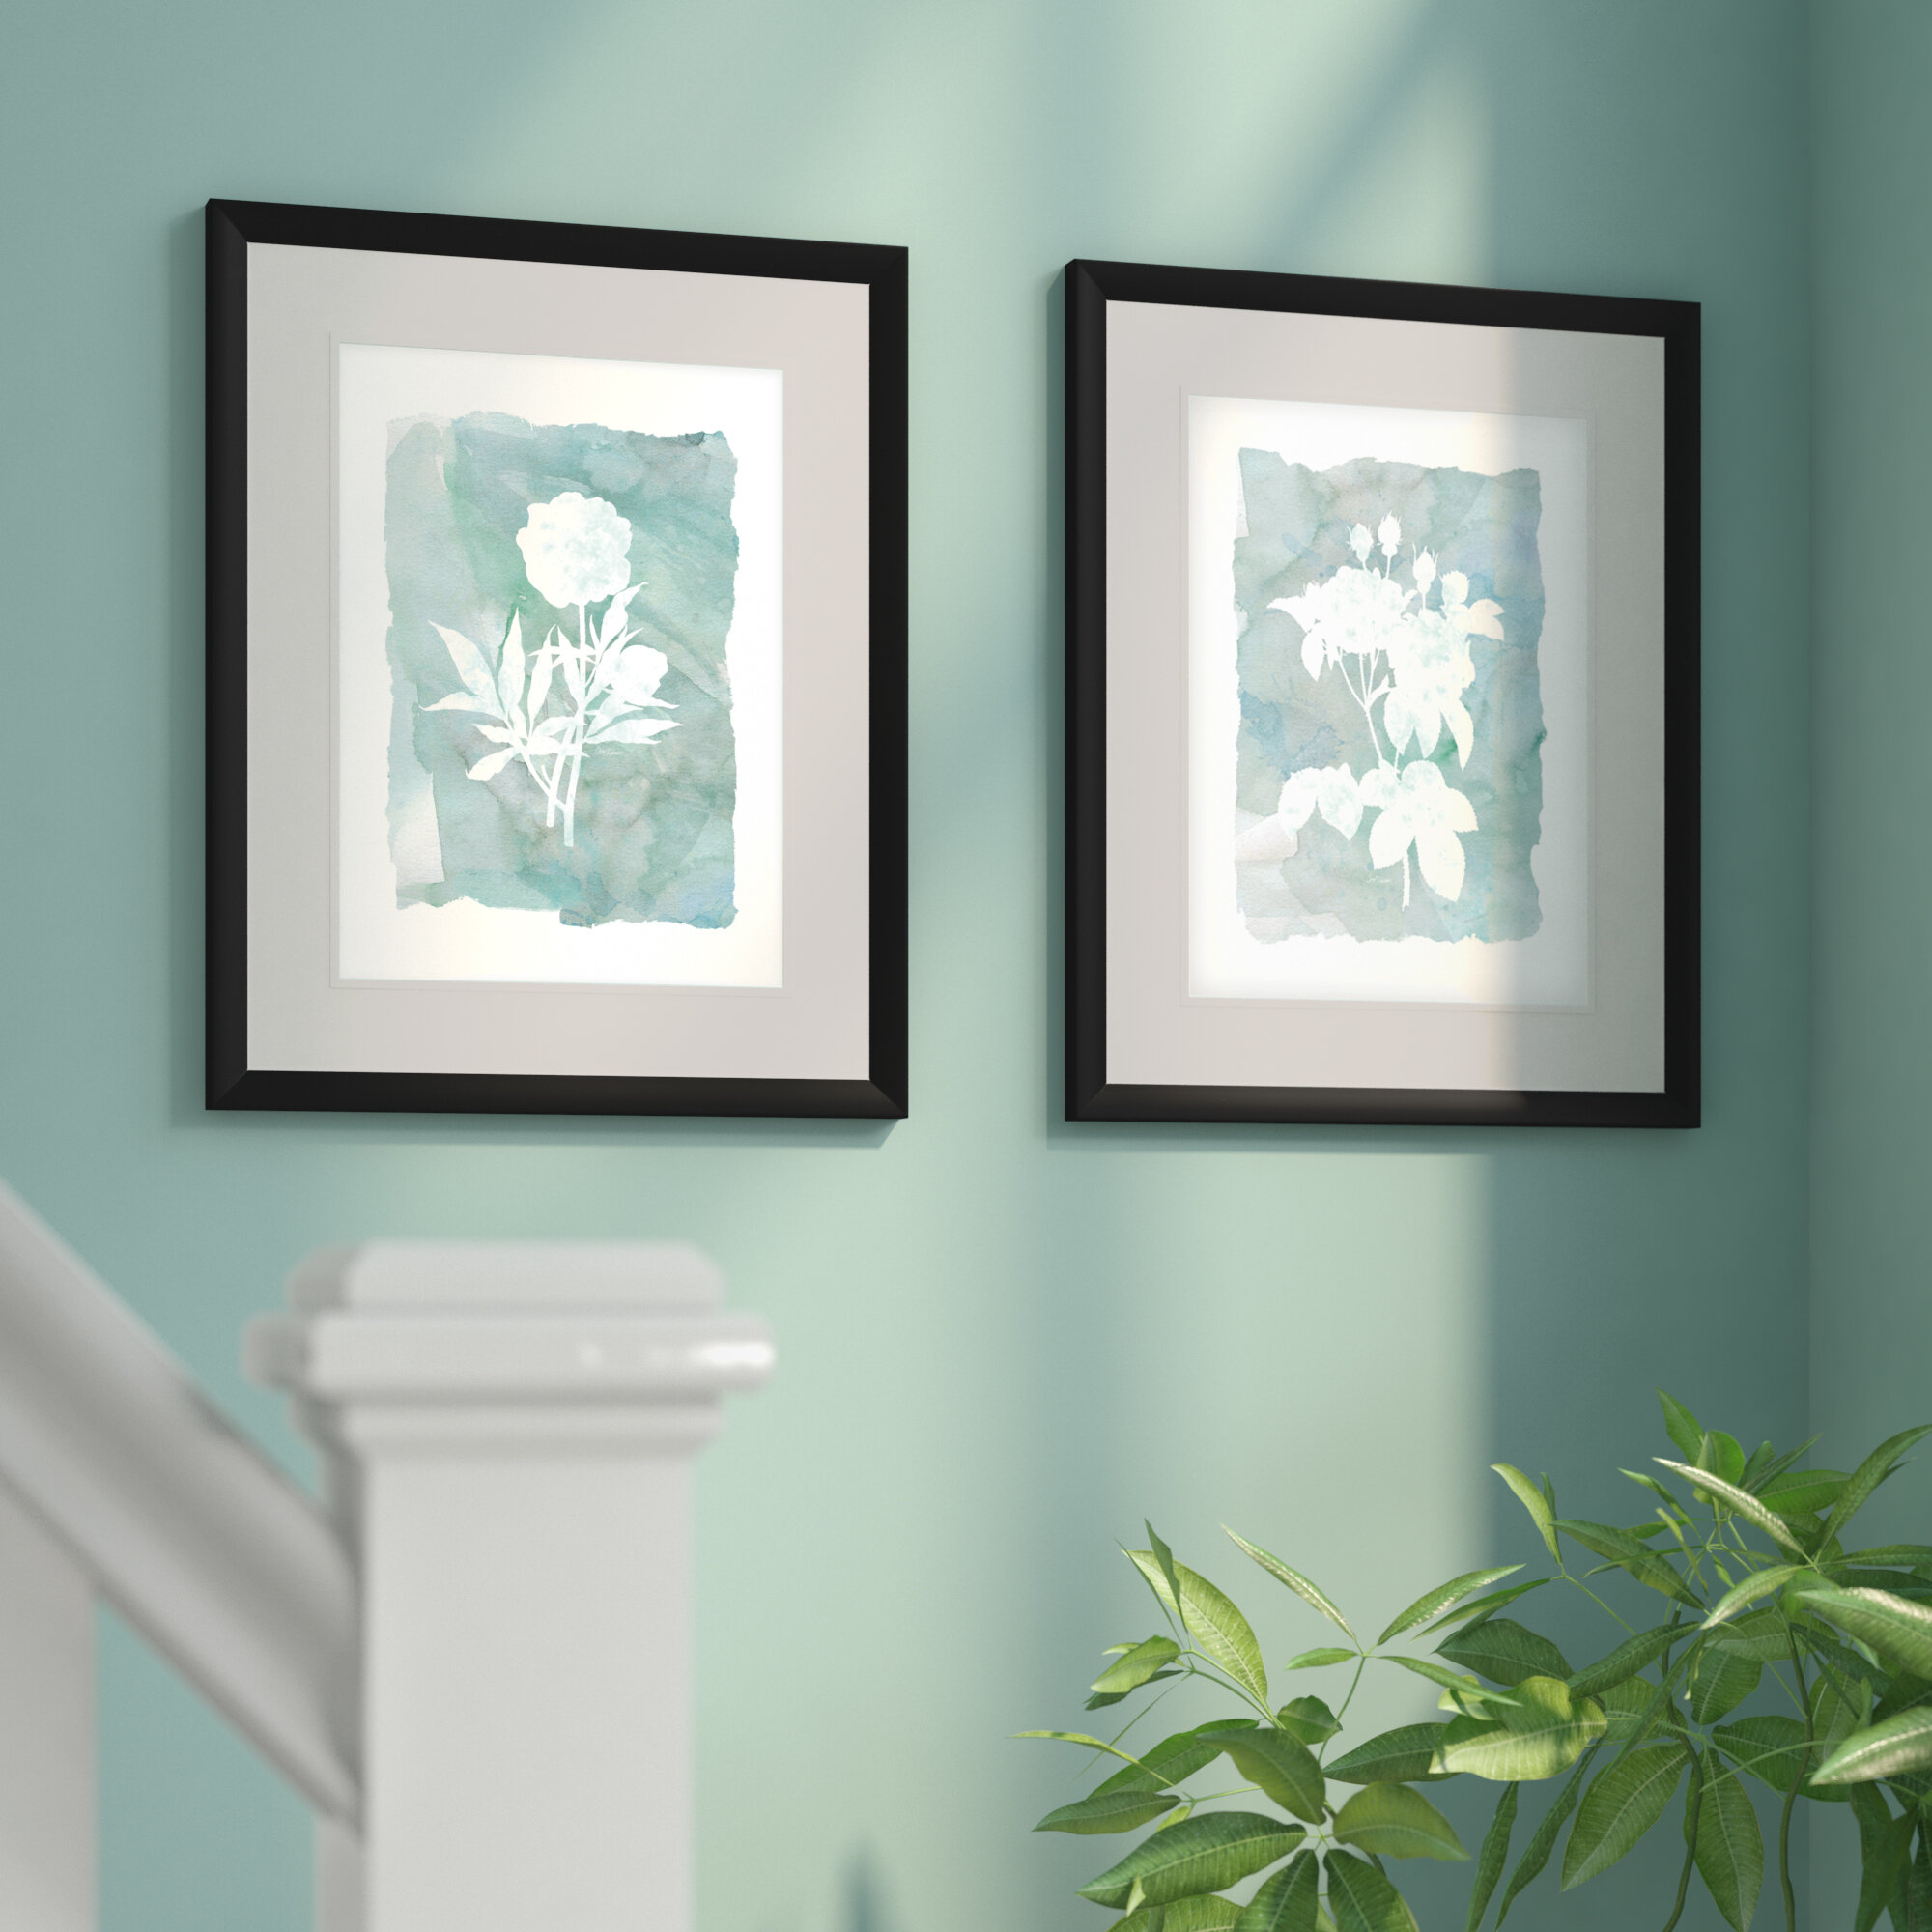 Bungalow Rose Silhouette Botanical I 2 Piece Framed Graphic Art Print Set Wayfair